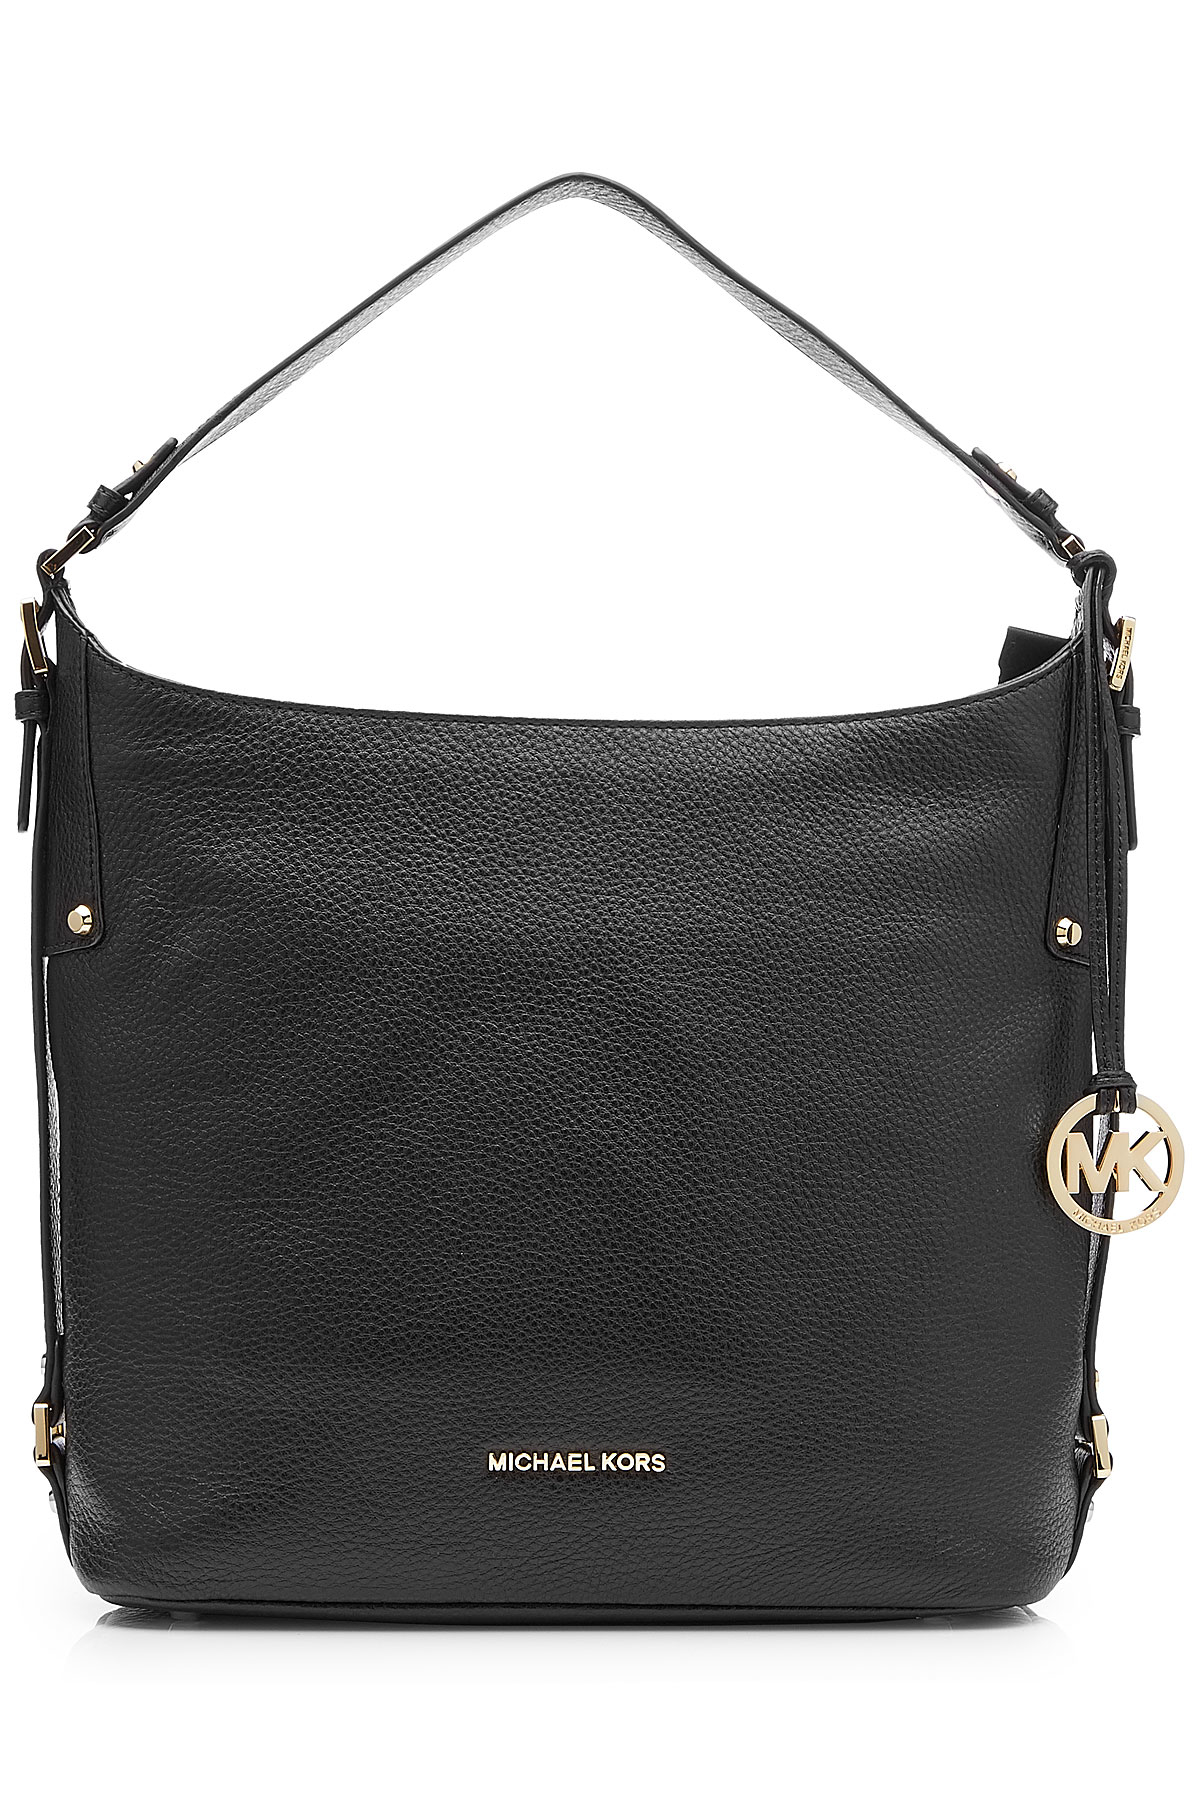 aee3722bf66aa6 MICHAEL Michael Kors Bedford Large Leather Shoulder Bag - Black in ...